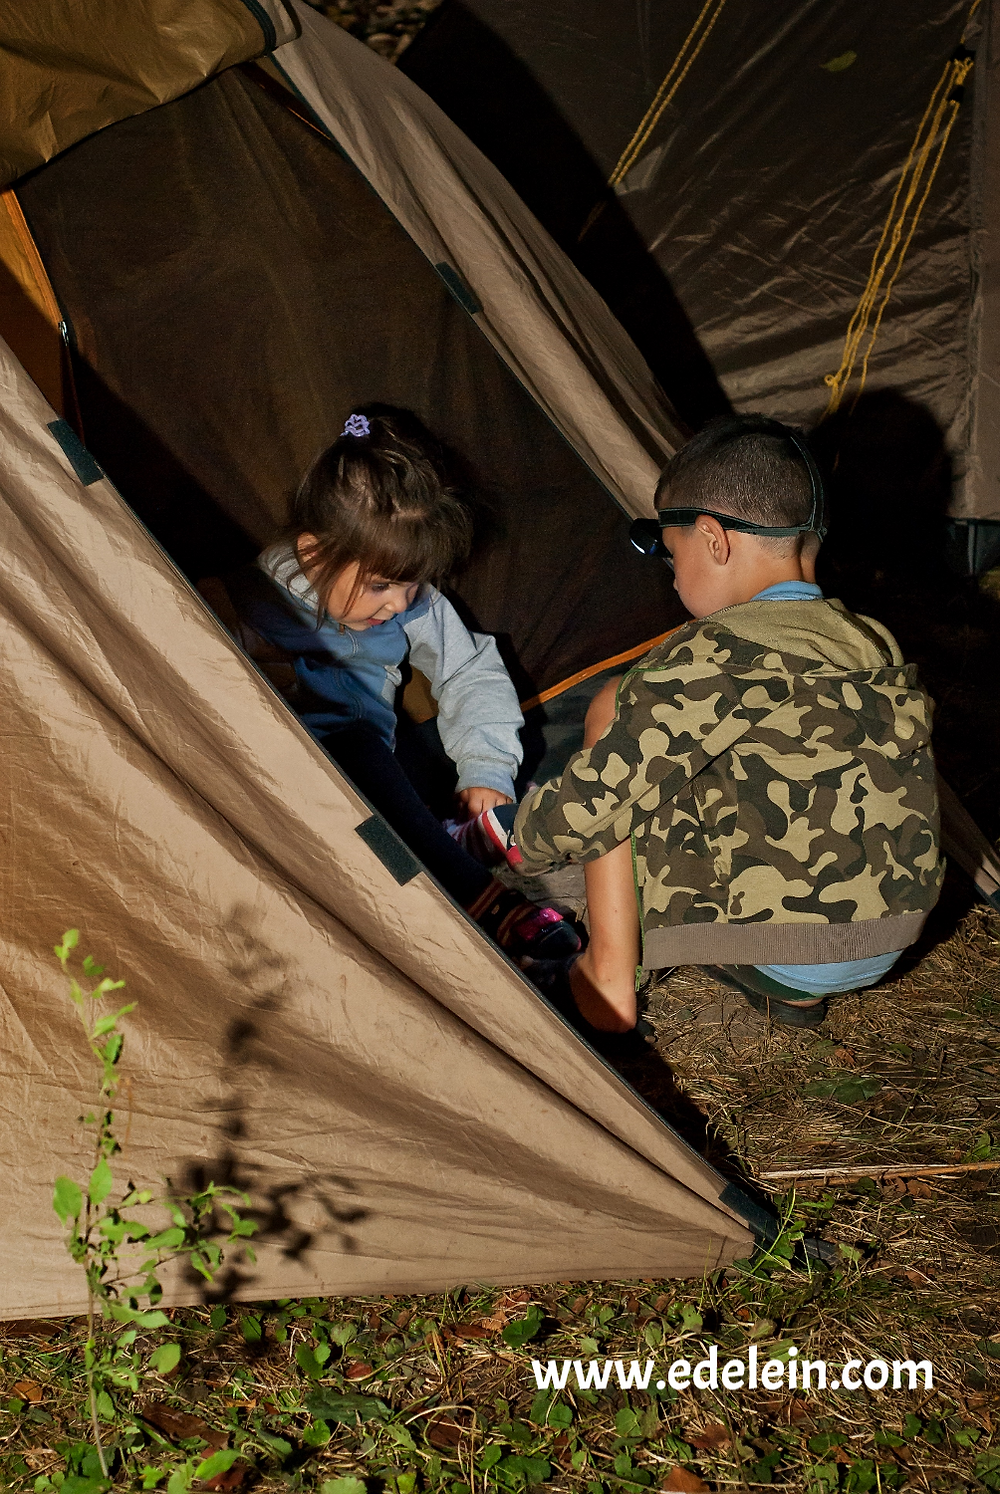 'Survivor' Backyard Camping with Kids